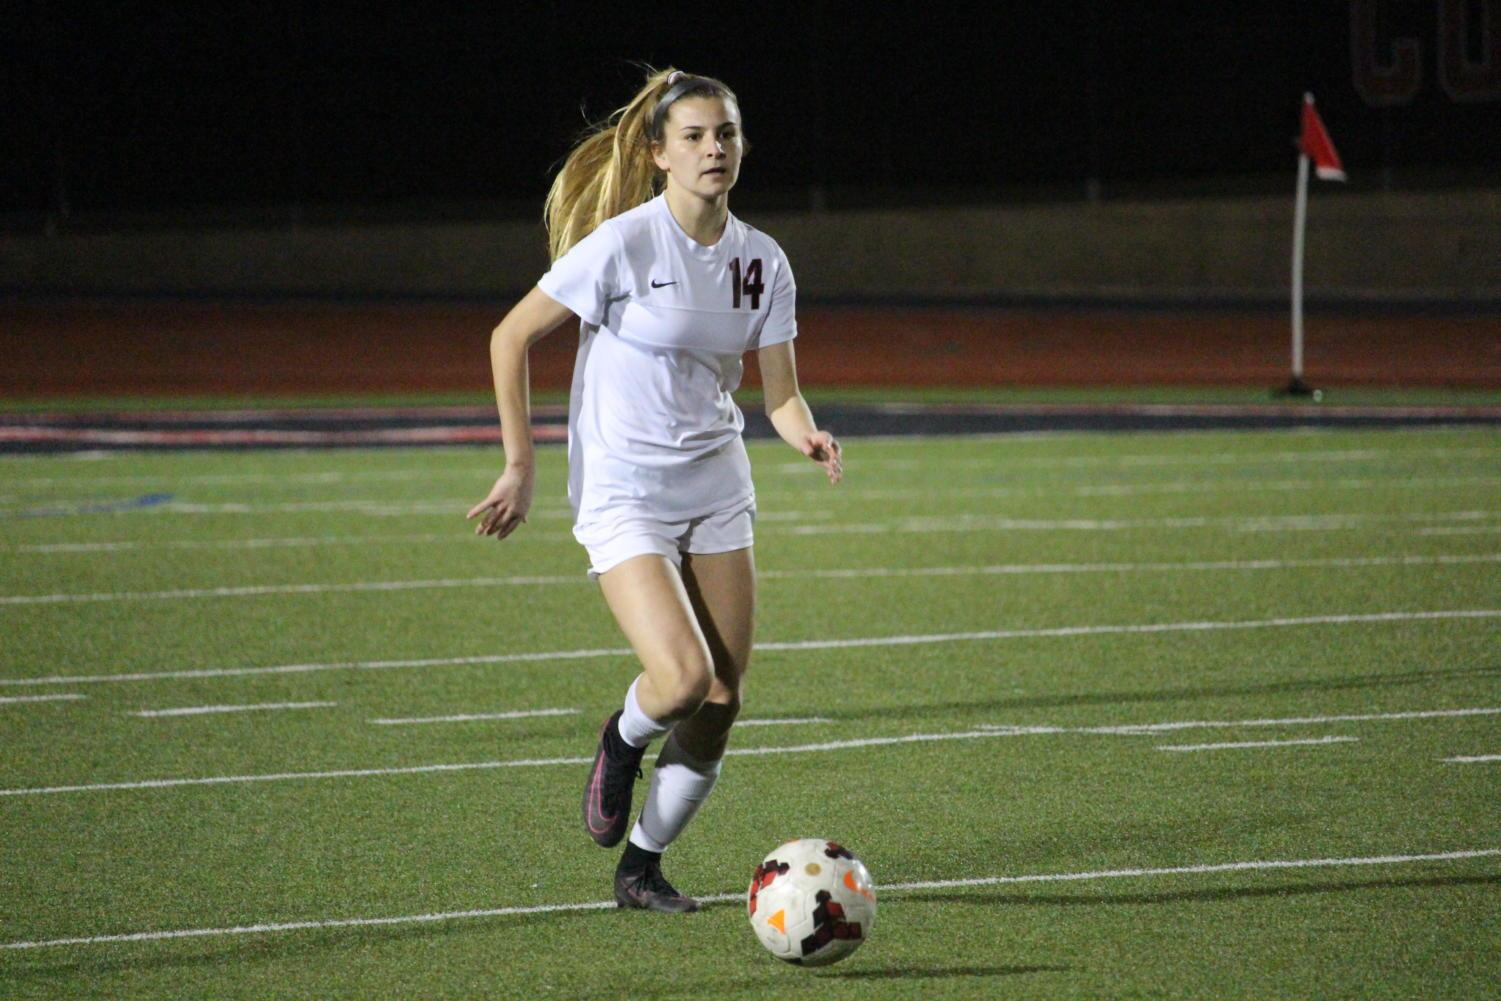 Coppell+High+School+senior+Addison+Ramirez+runs+with+the+ball+during+the+first+half+of+Tuesday+nights+home+game+at+Buddy+Echols+Field.+The+varsity+girls+soccer+team+played+against+WT+White+taking+the+win+with+a+score+of+5-1.